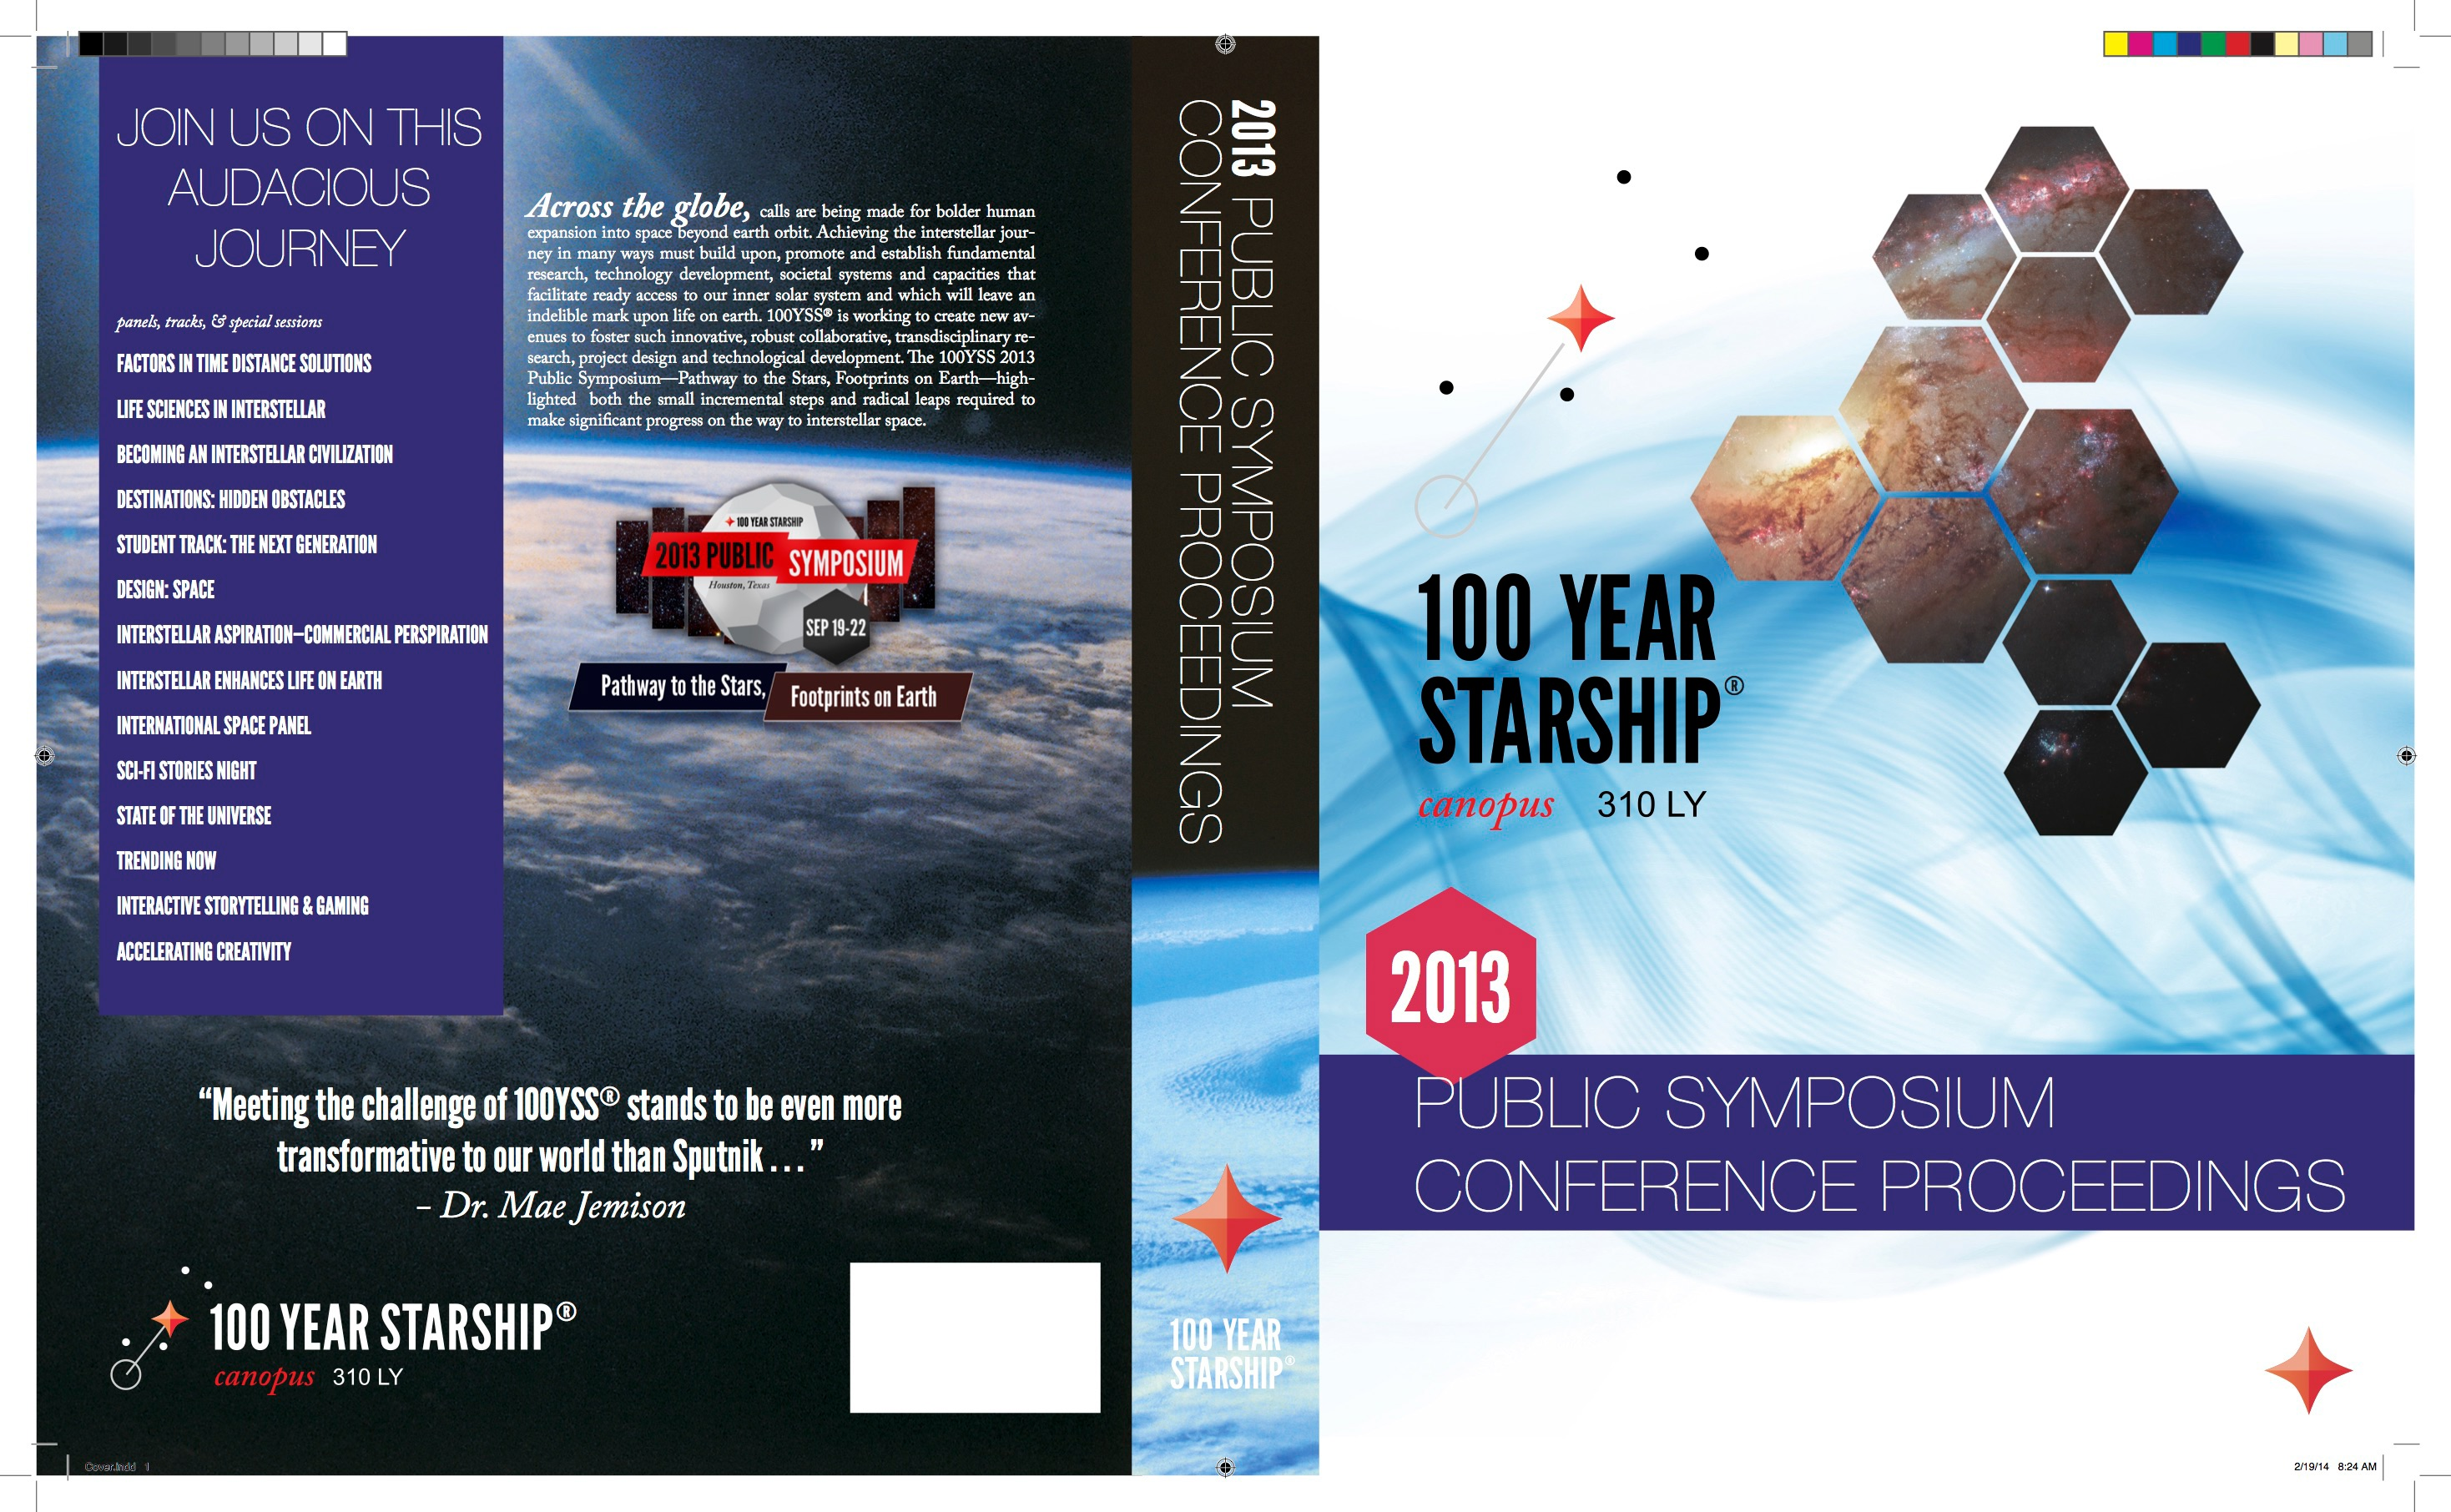 Symposium Conference Proceedings, 2012-2015